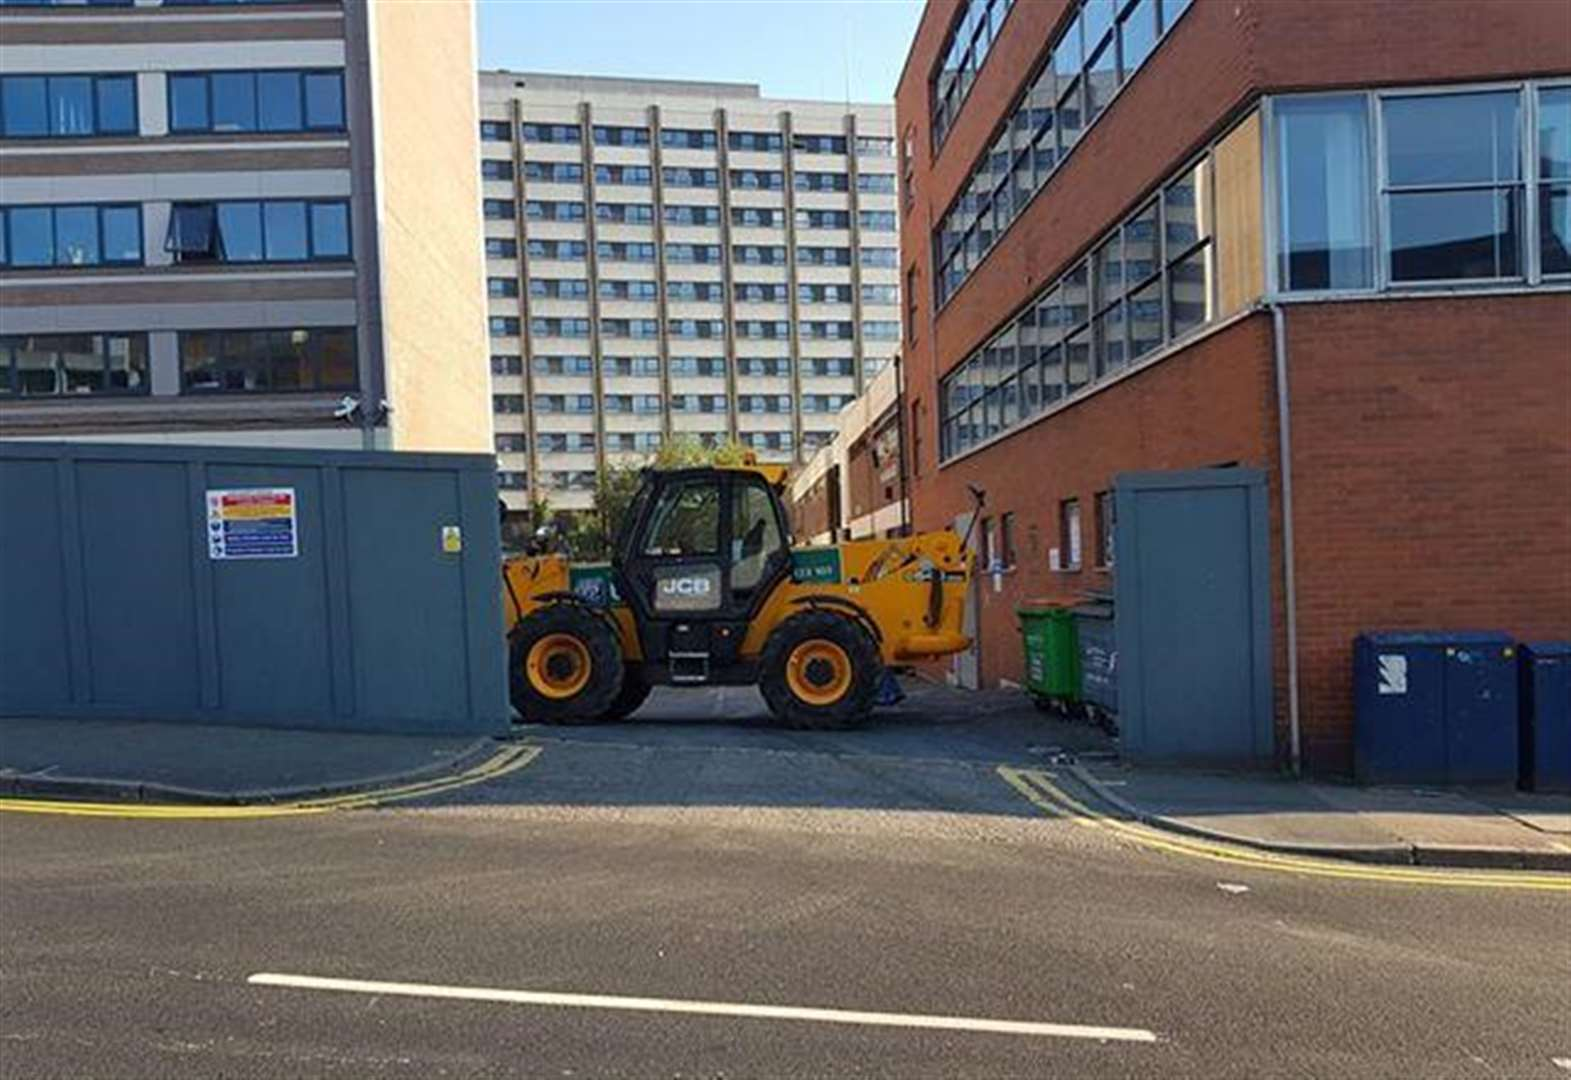 JCB blocks travellers from site